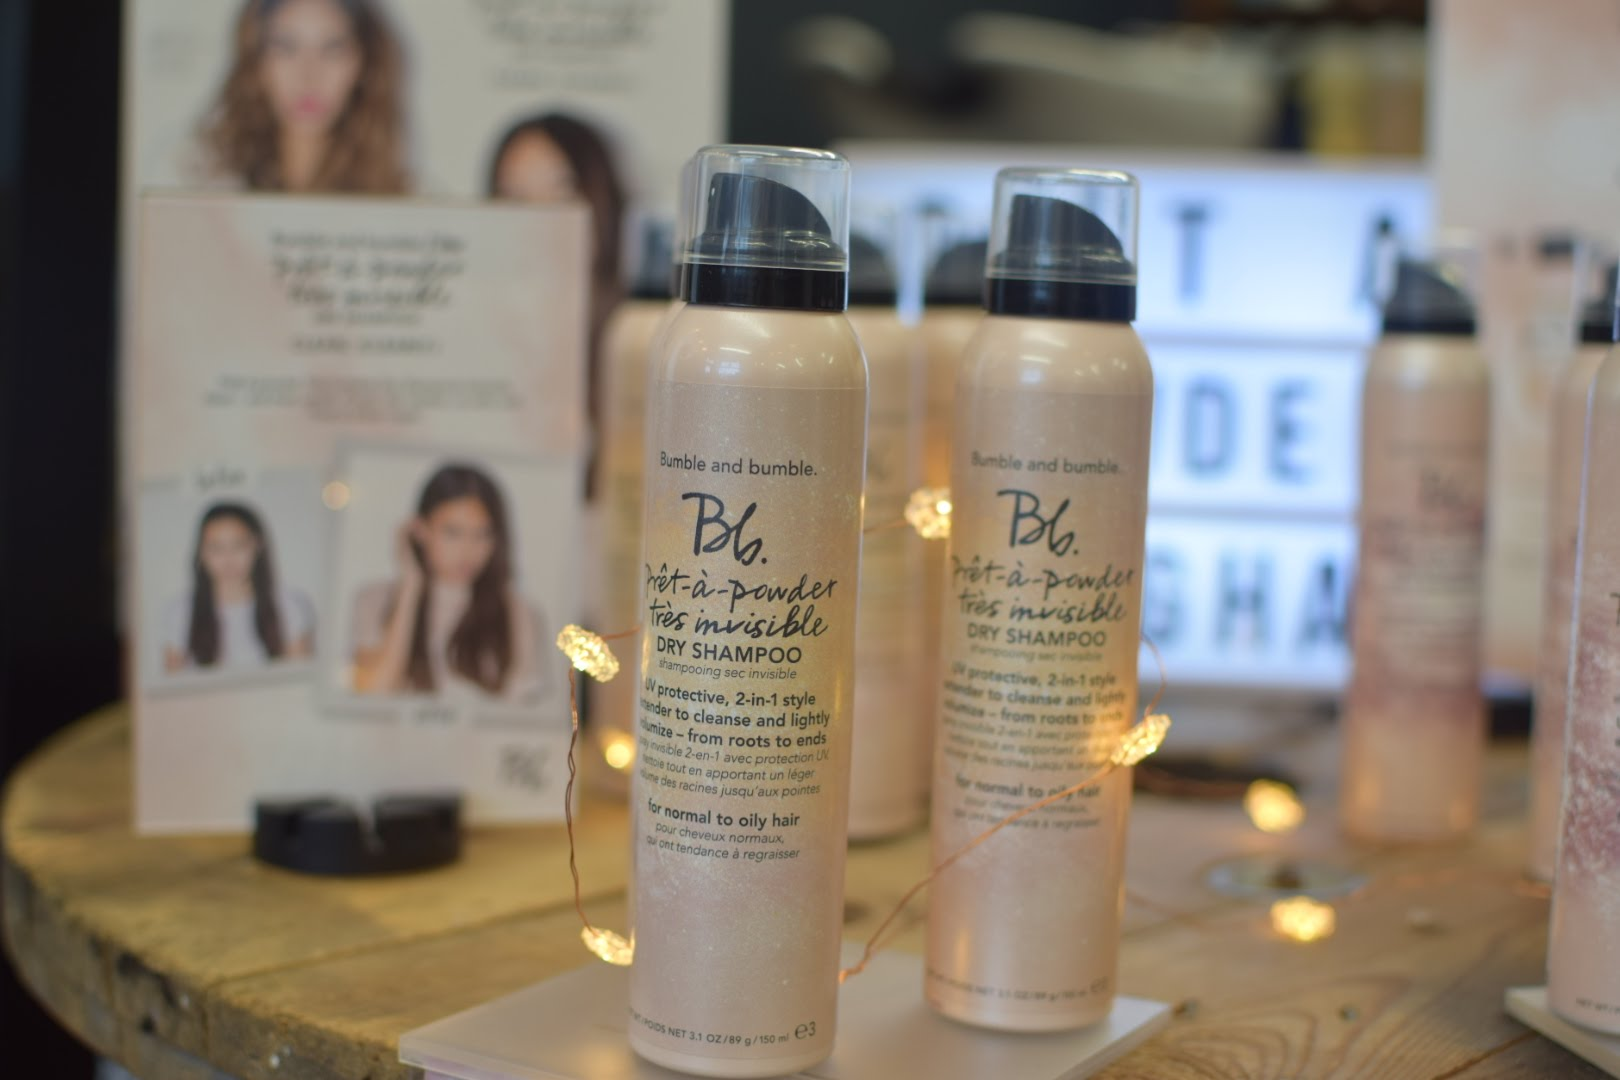 Bumble and bumble pret a powder tres invisible dry shampoo